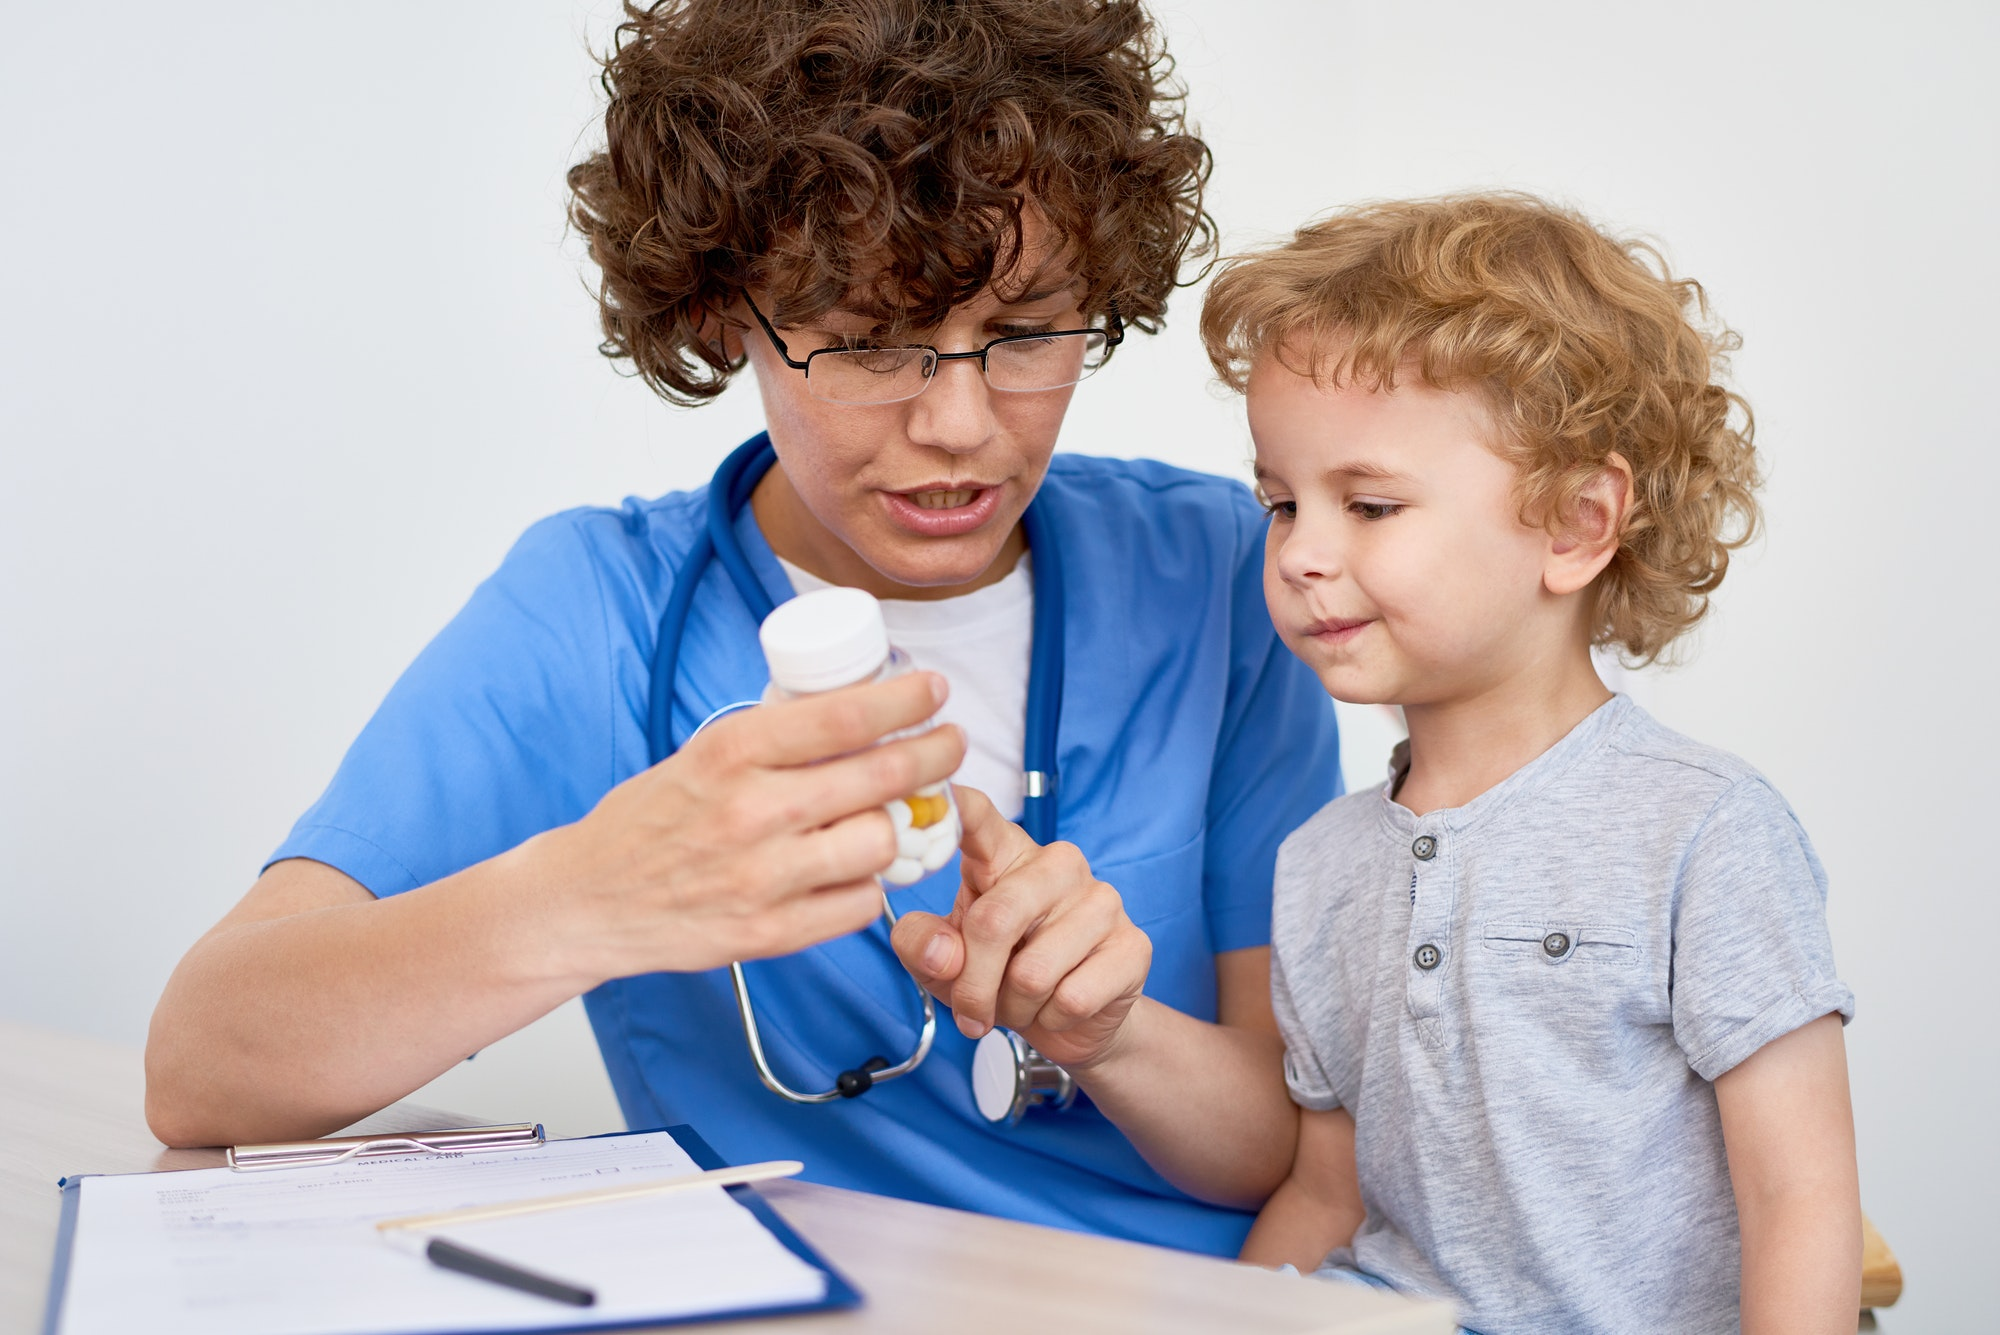 Nurse Giving Vitamins to Little Child